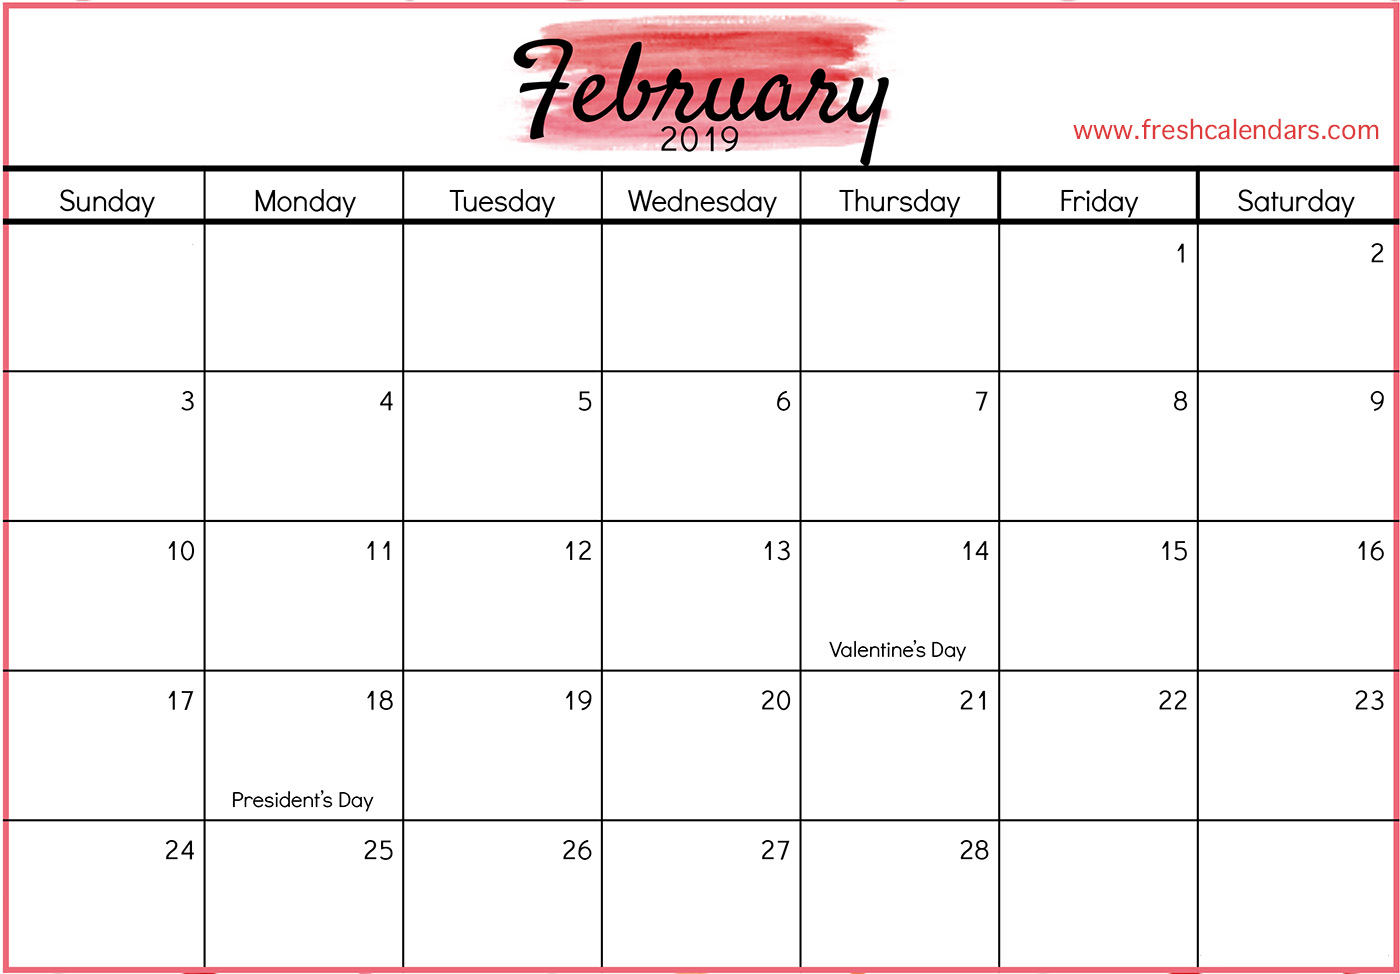 graphic relating to February Printable Calendar called Blank Every month Calendar February 2019 - Obtain Free of charge